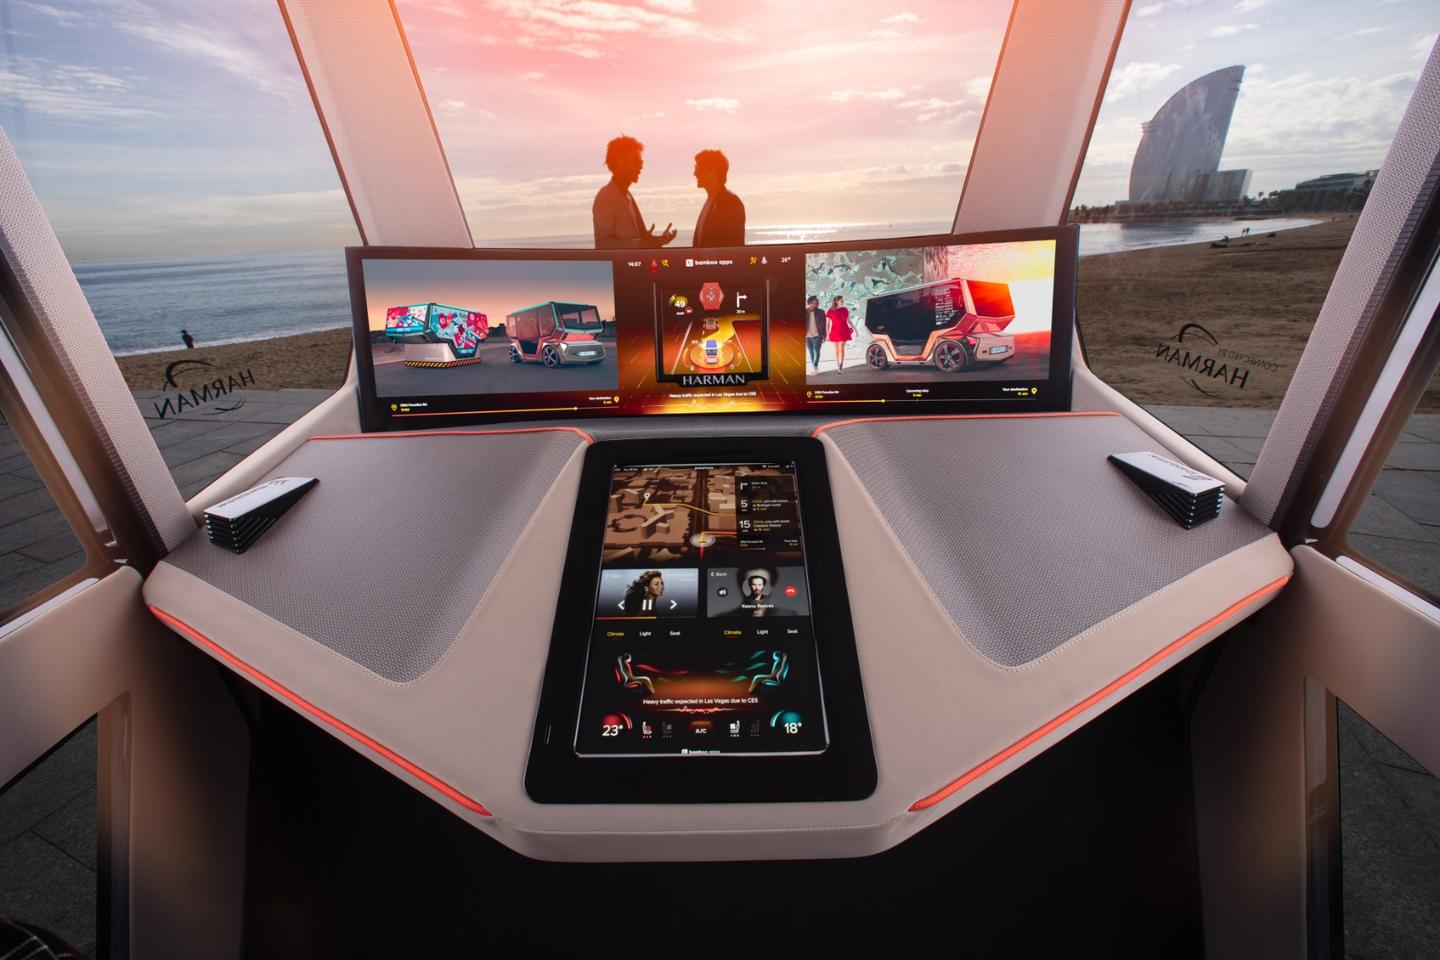 A curved 49-inch LED screen spans the entire width of the microSNAP's cabin